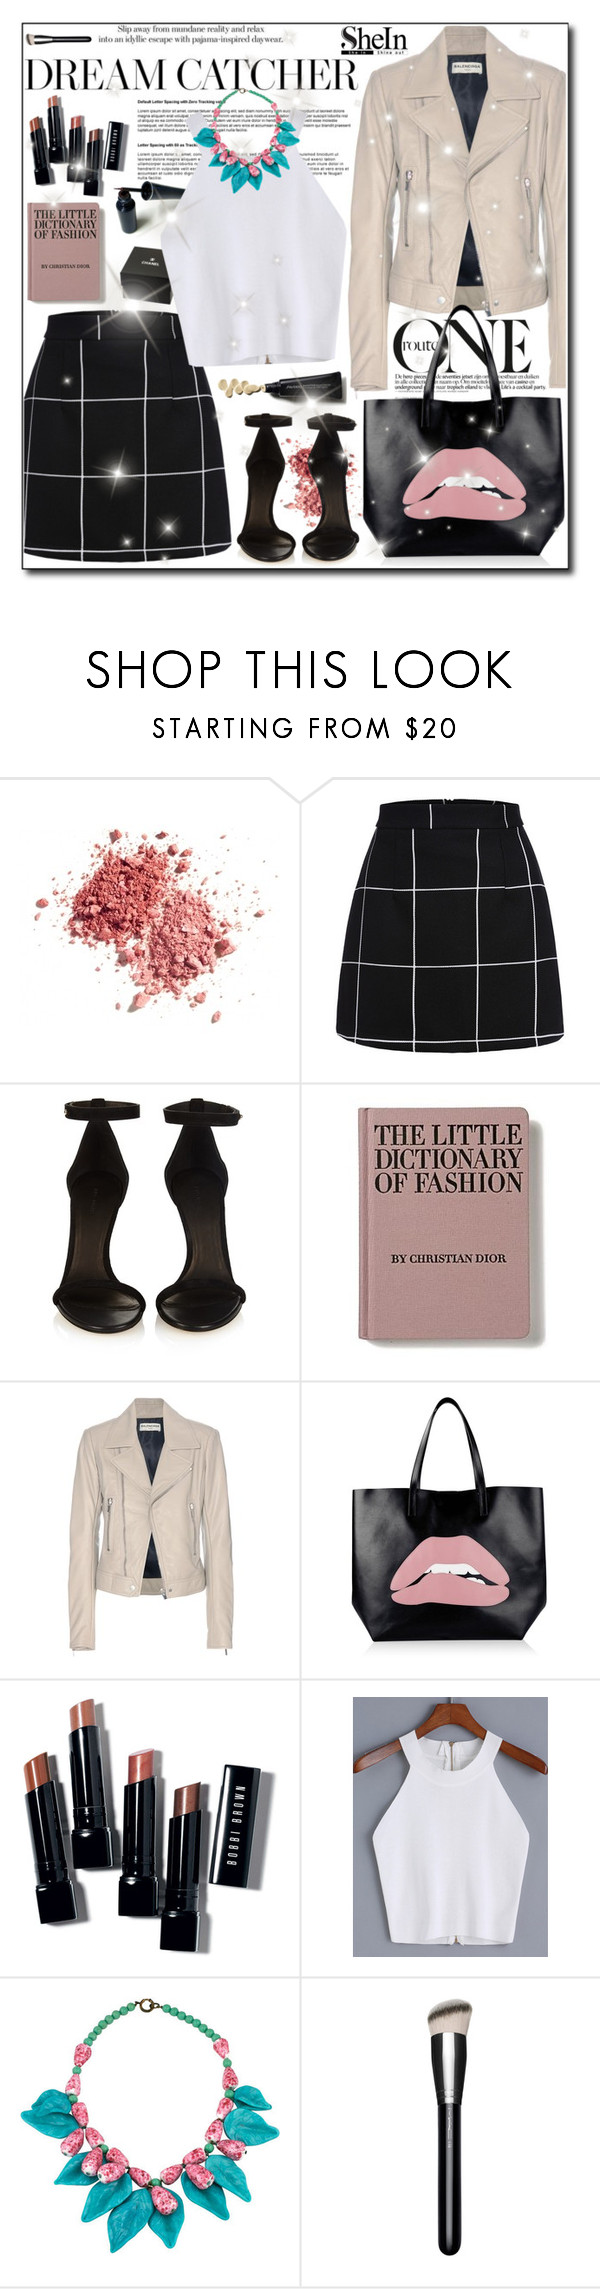 """""""SheIn Contest"""" by adnaaaa ❤ liked on Polyvore featuring Chanel, Isabel Marant, Balenciaga, RED Valentino, Bobbi Brown Cosmetics and MAC Cosmetics"""